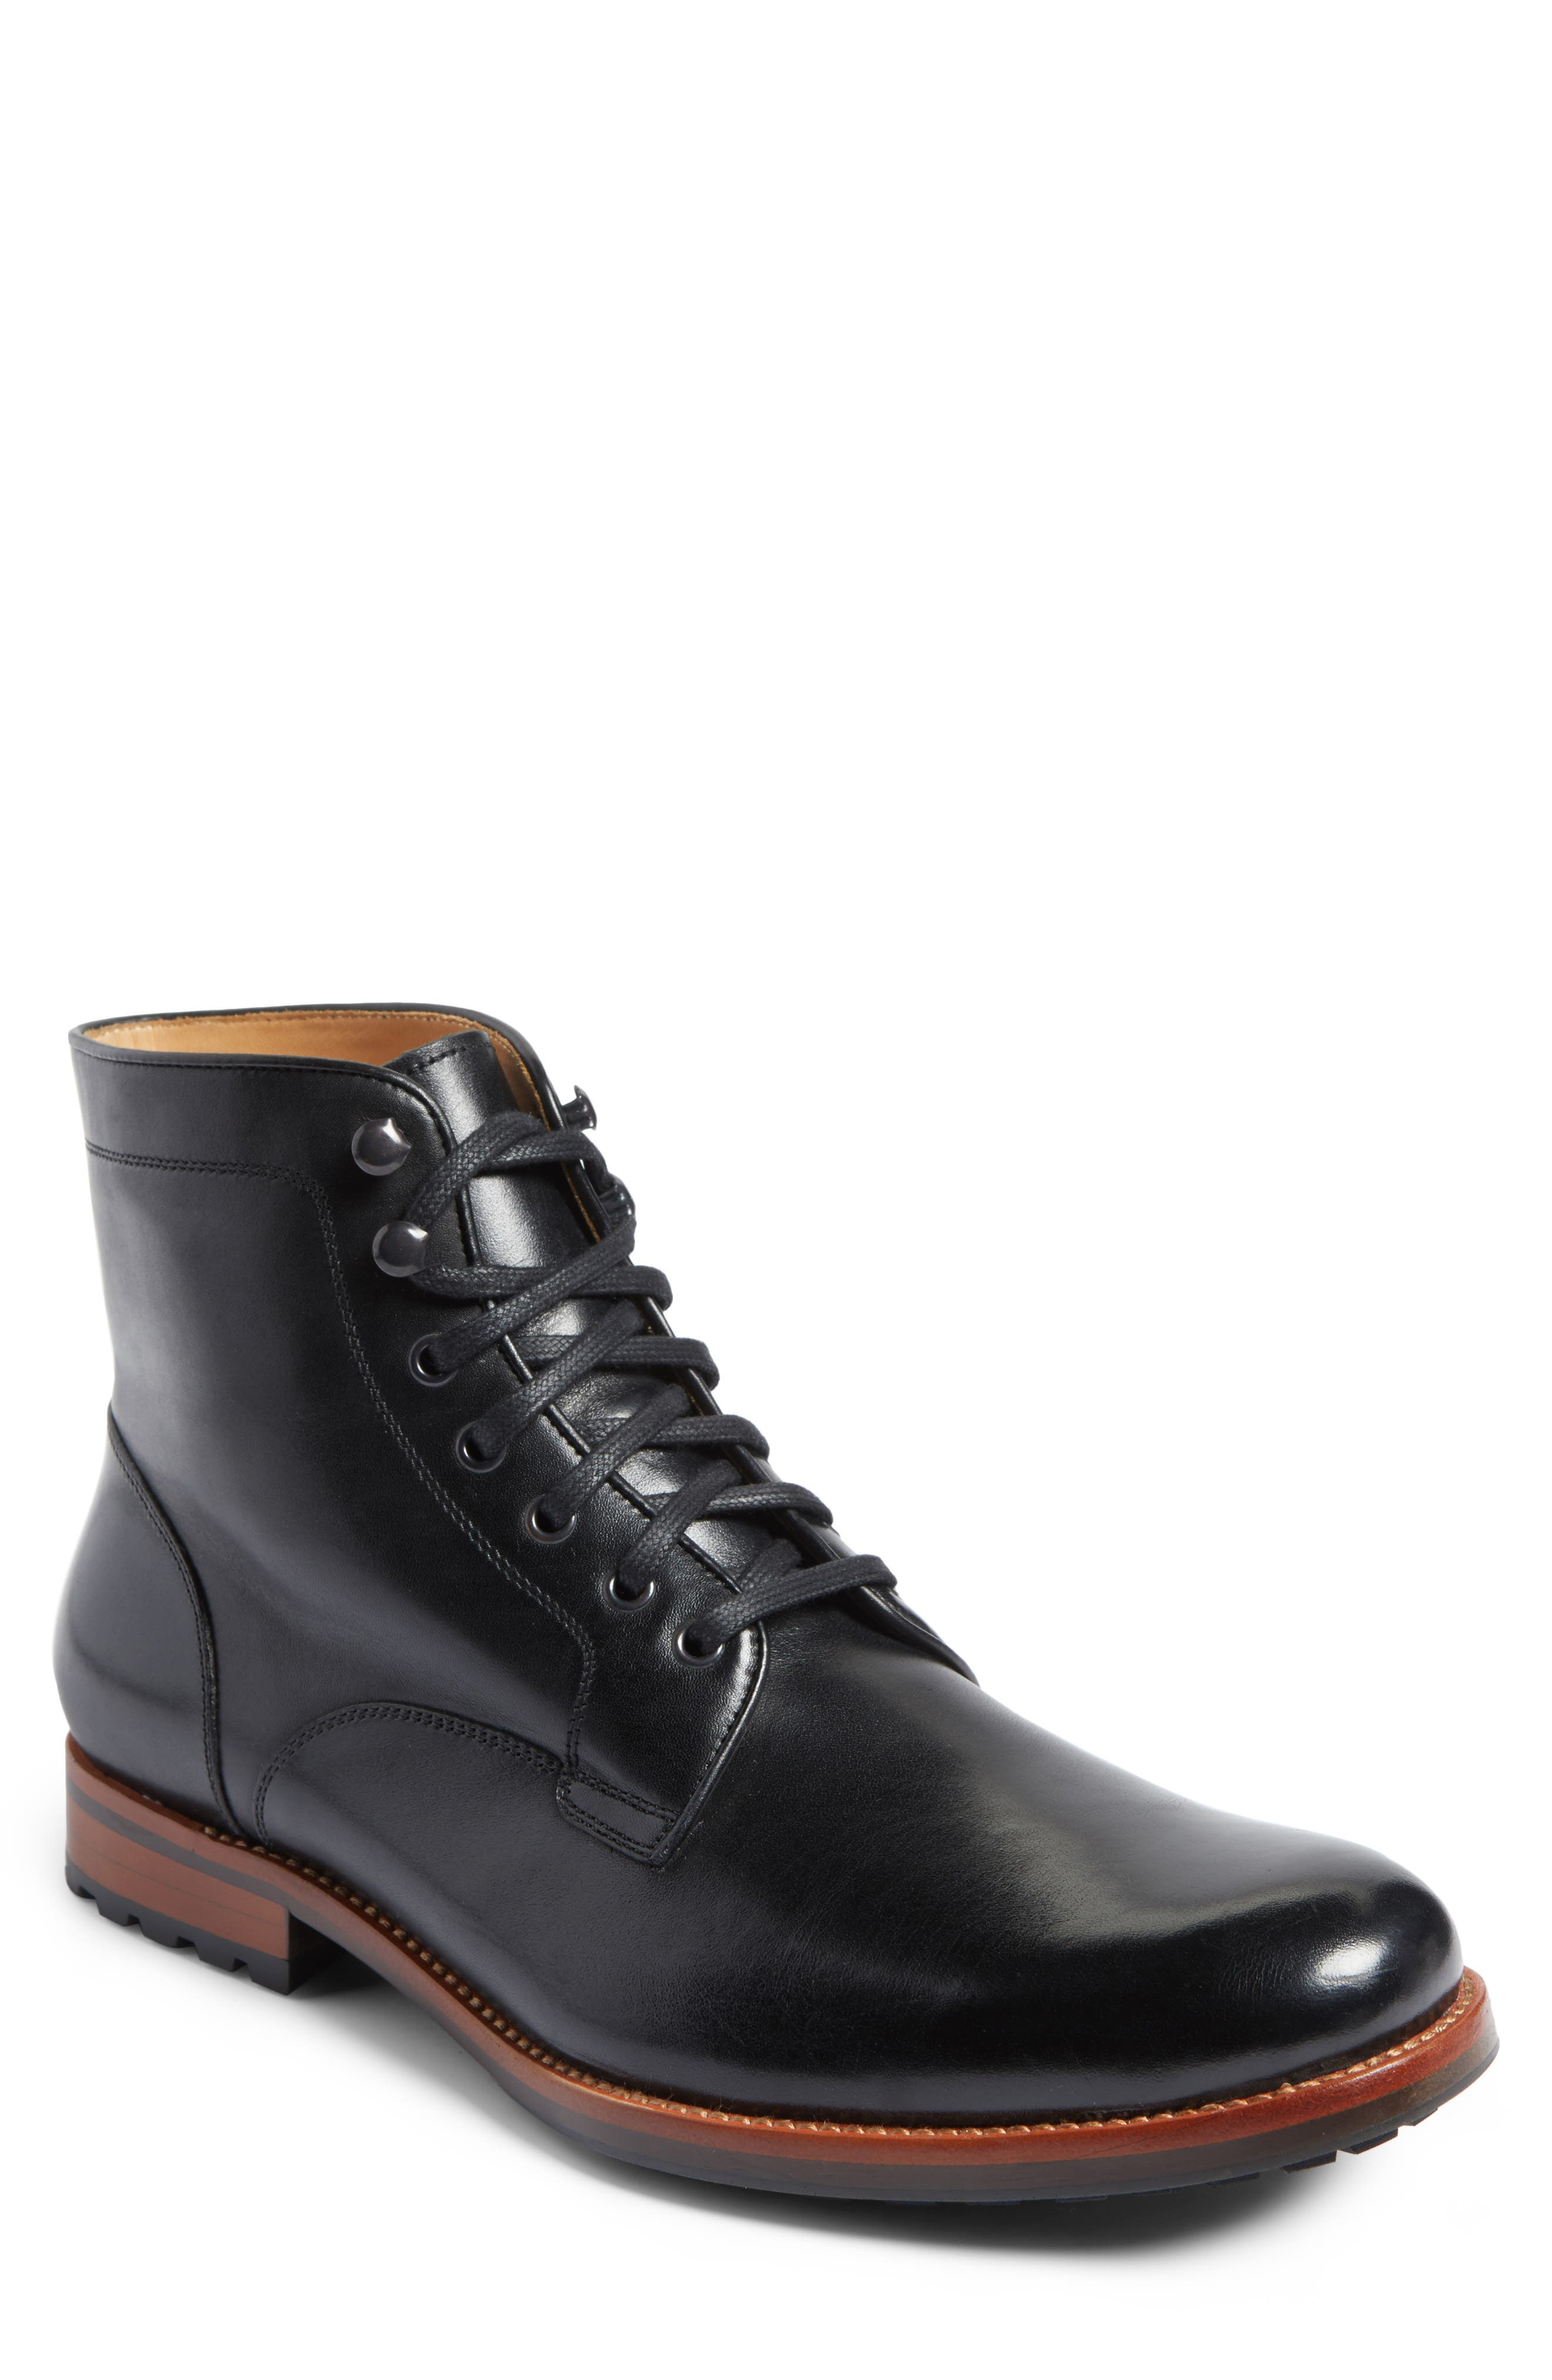 Alternate Image 1 Selected - John W. Nordstrom® Axeford Plain Toe Boot (Men)